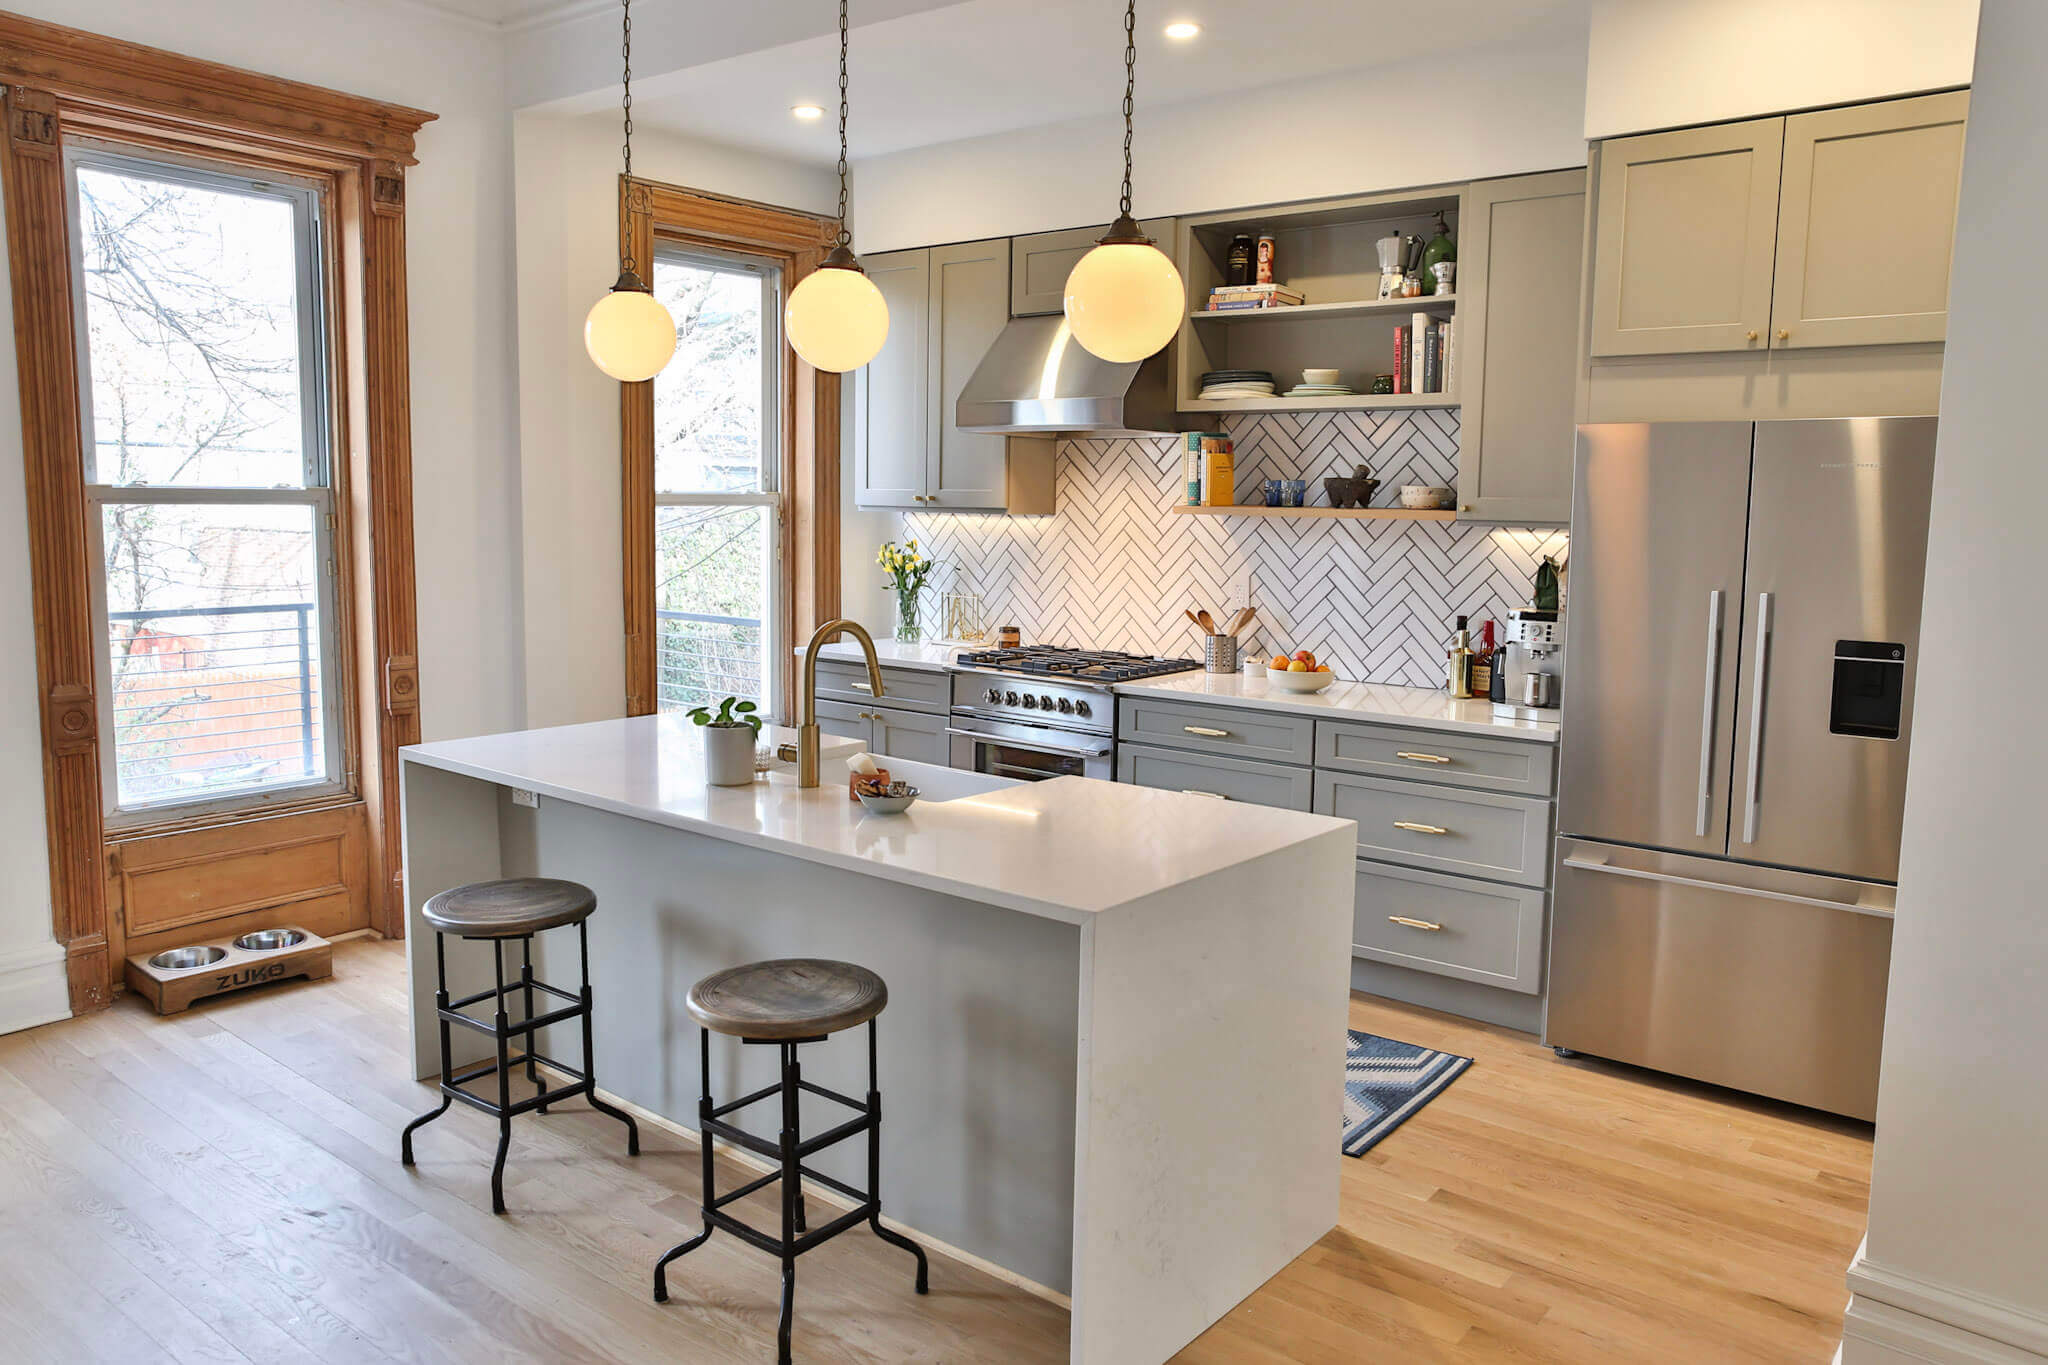 How To Get Budget Kitchen Cabinets With